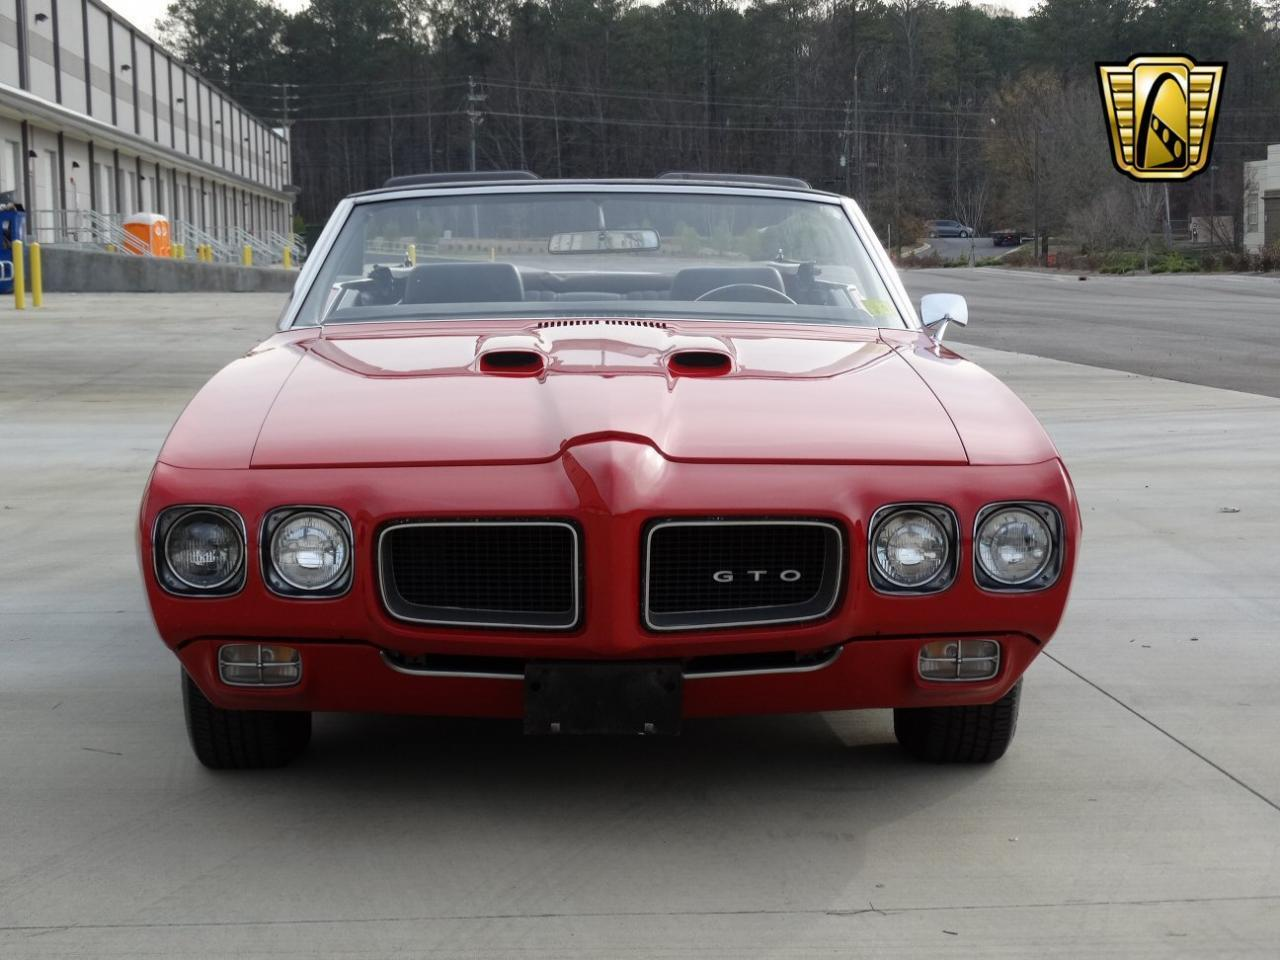 Large Picture of 1970 GTO - $71,000.00 Offered by Gateway Classic Cars - Atlanta - KF5T